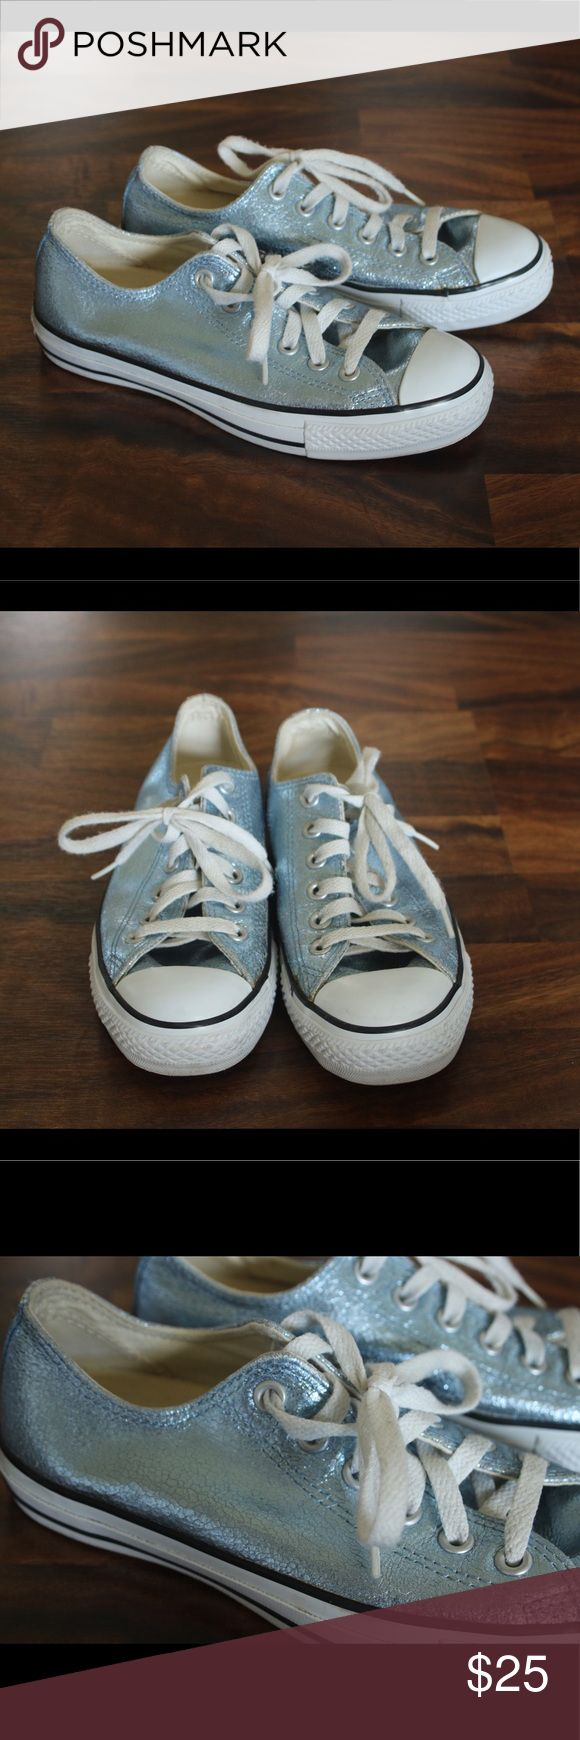 Converse Chuck Taylor Al Star Metallic Blue Converse Chuck Taylor All Star iconic sneaker in a metallic blue color! Definitely light up your outfit! Converse Shoes Sneakers